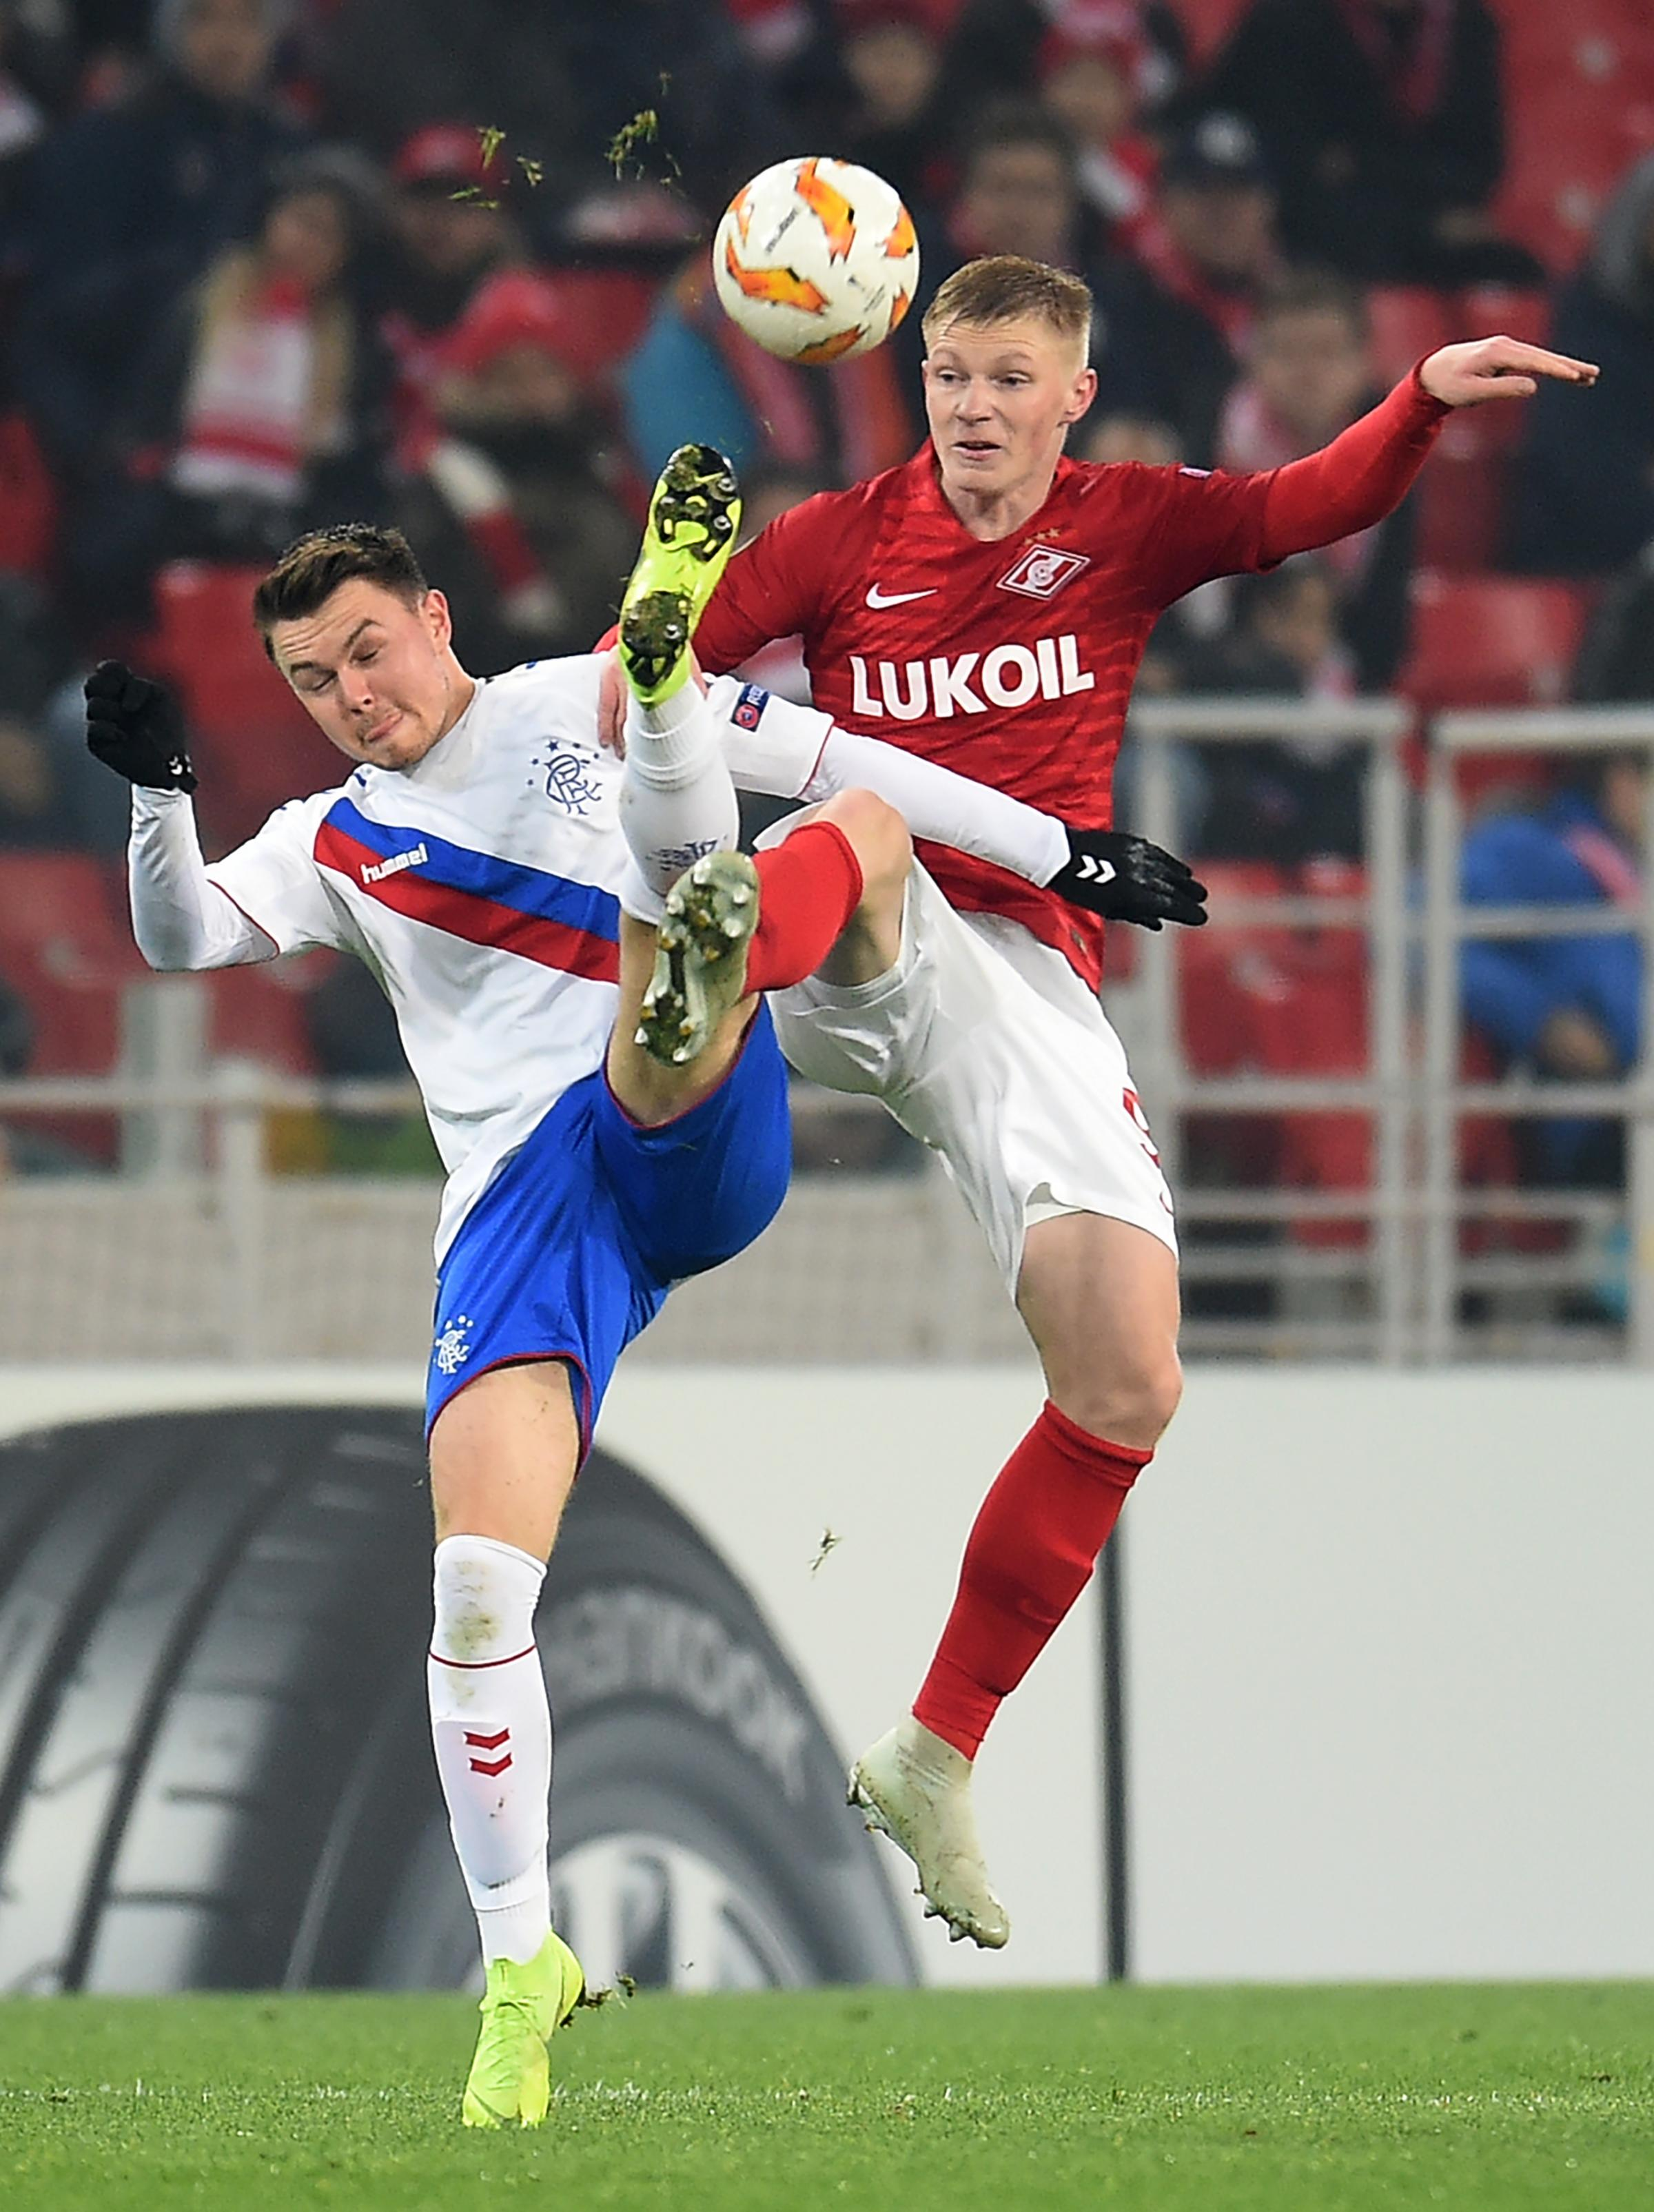 Glenn Middleton was one of the plus points for Rangers and his goal made it 3-2 against Spartak Moscot